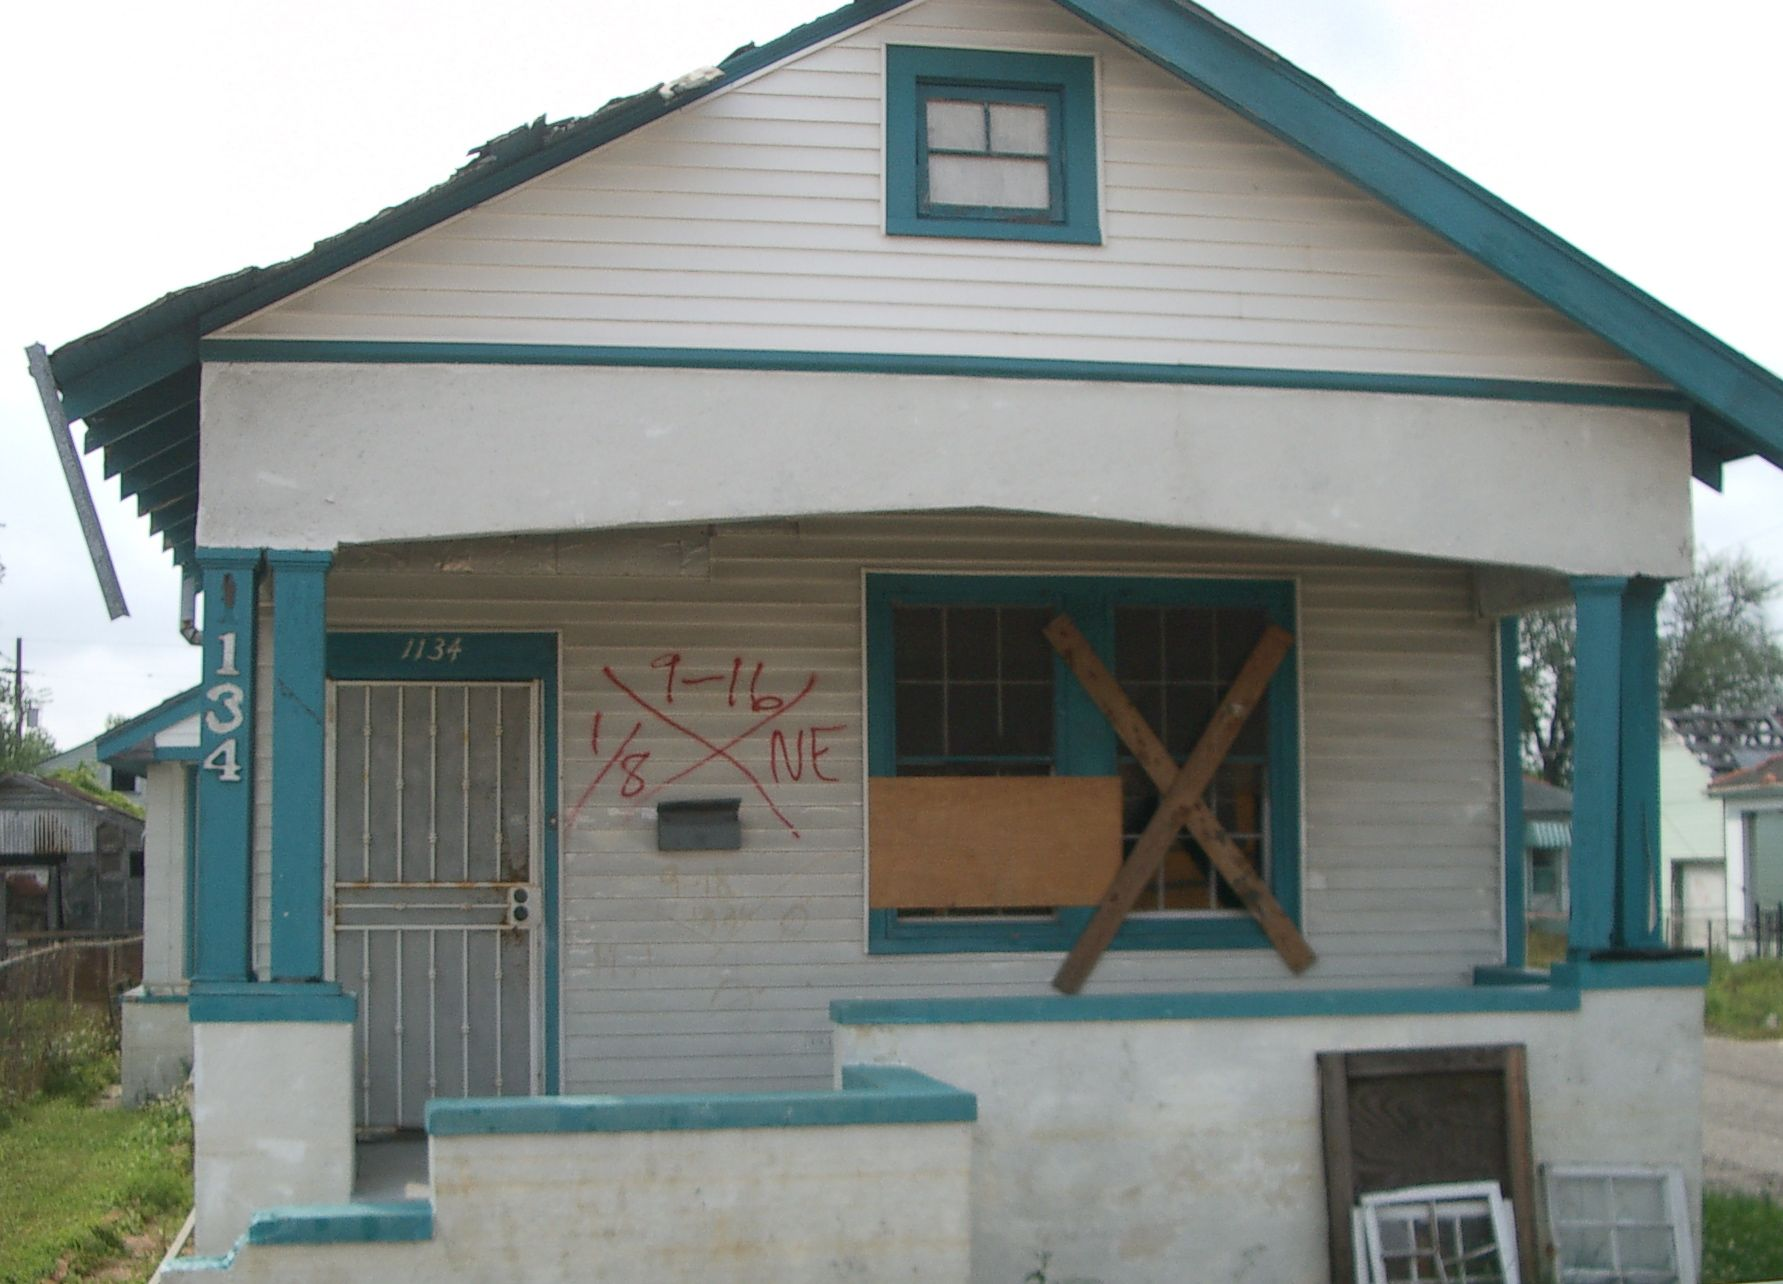 NOLA house with X-coded marking--circa 2007